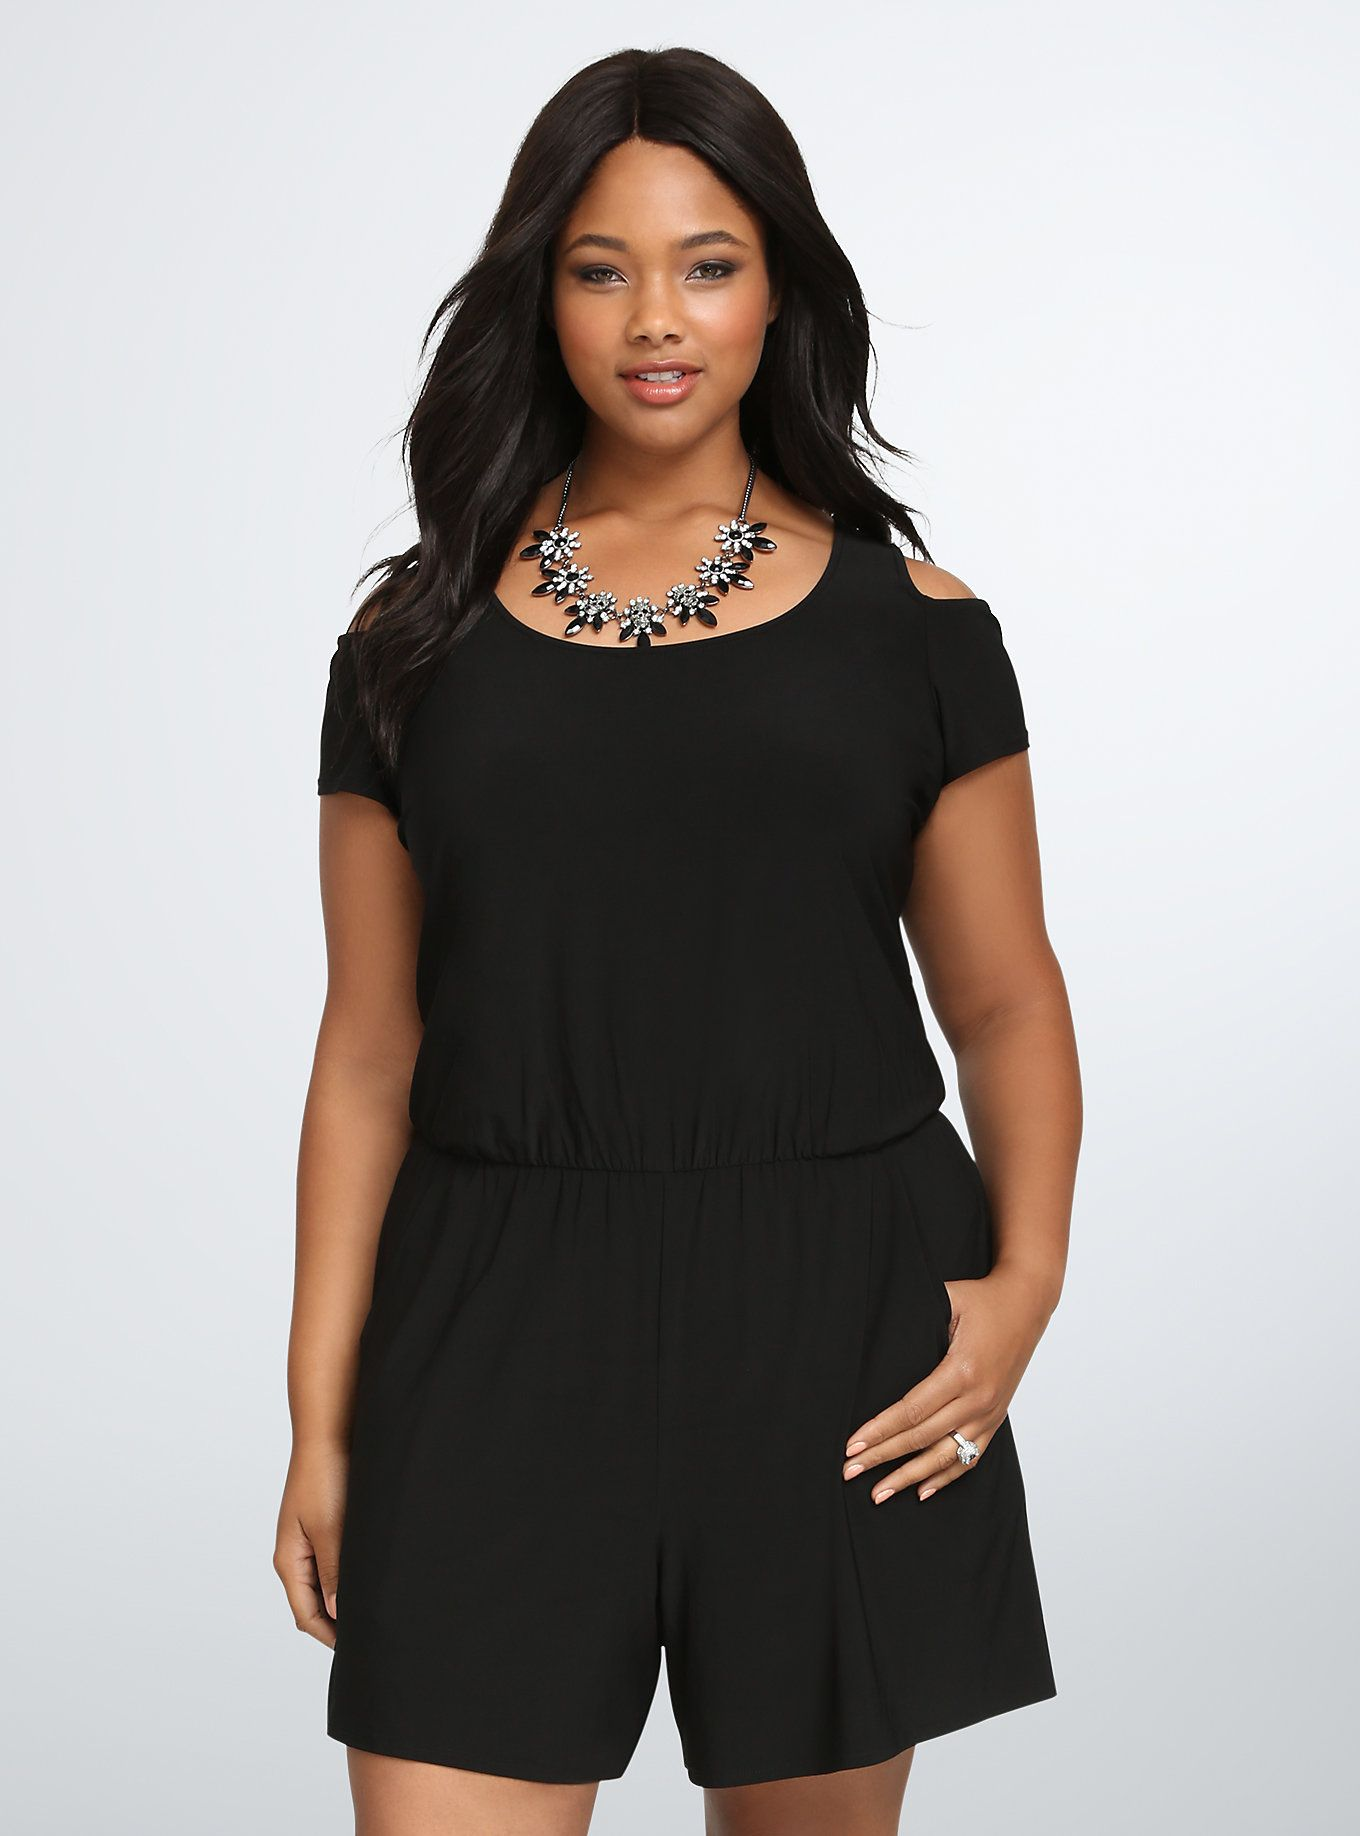 3ffb60ad247 jumper shorts outfit plus size - Google Search